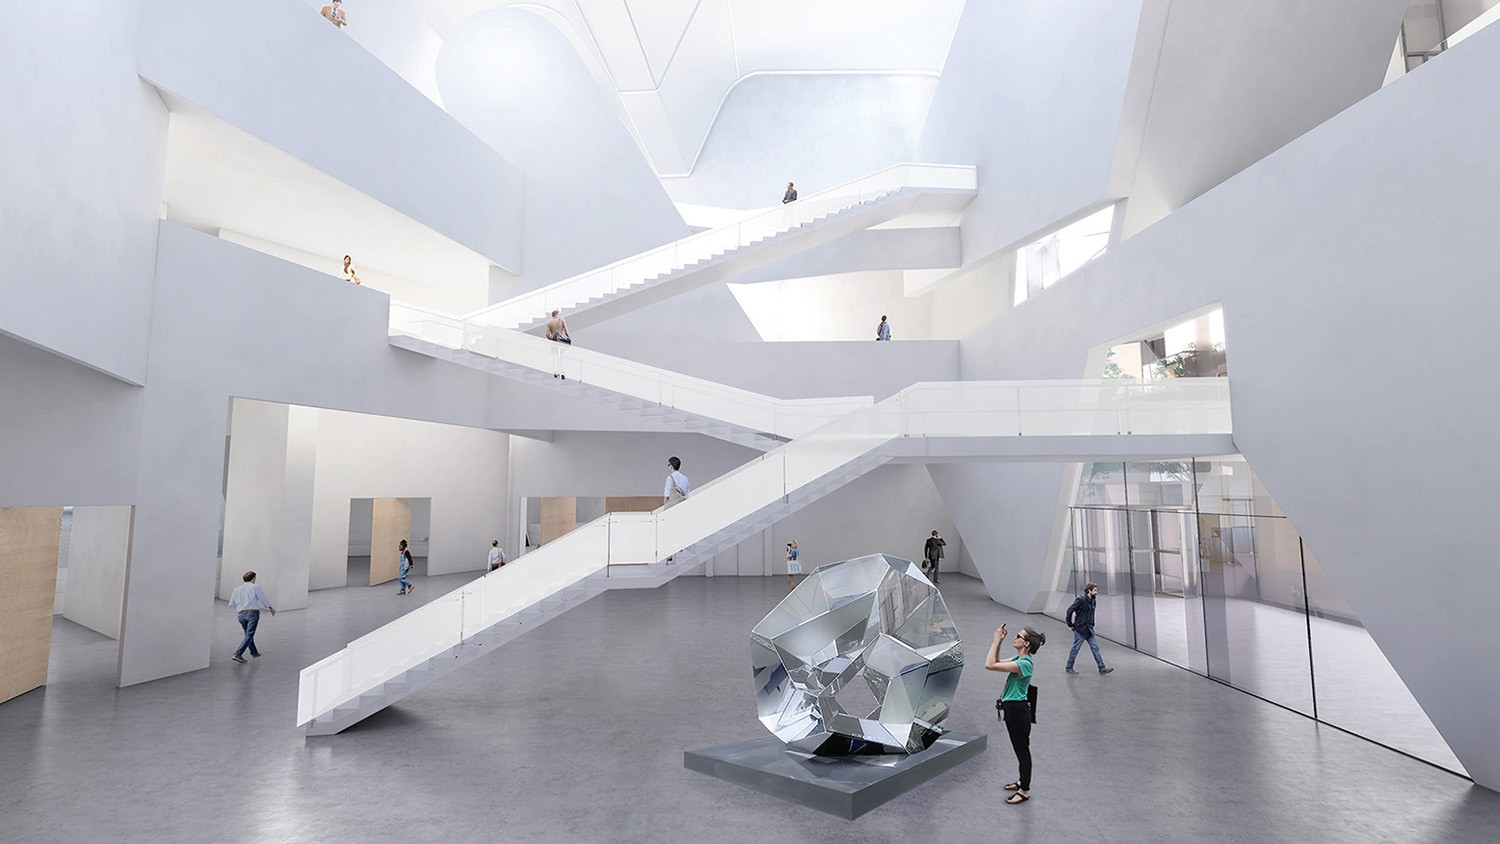 https://s3.us-east-2.amazonaws.com/steven-holl/uploads/projects/project-images/SHA_Angers_MuseumEntranceInterior_WH.jpg